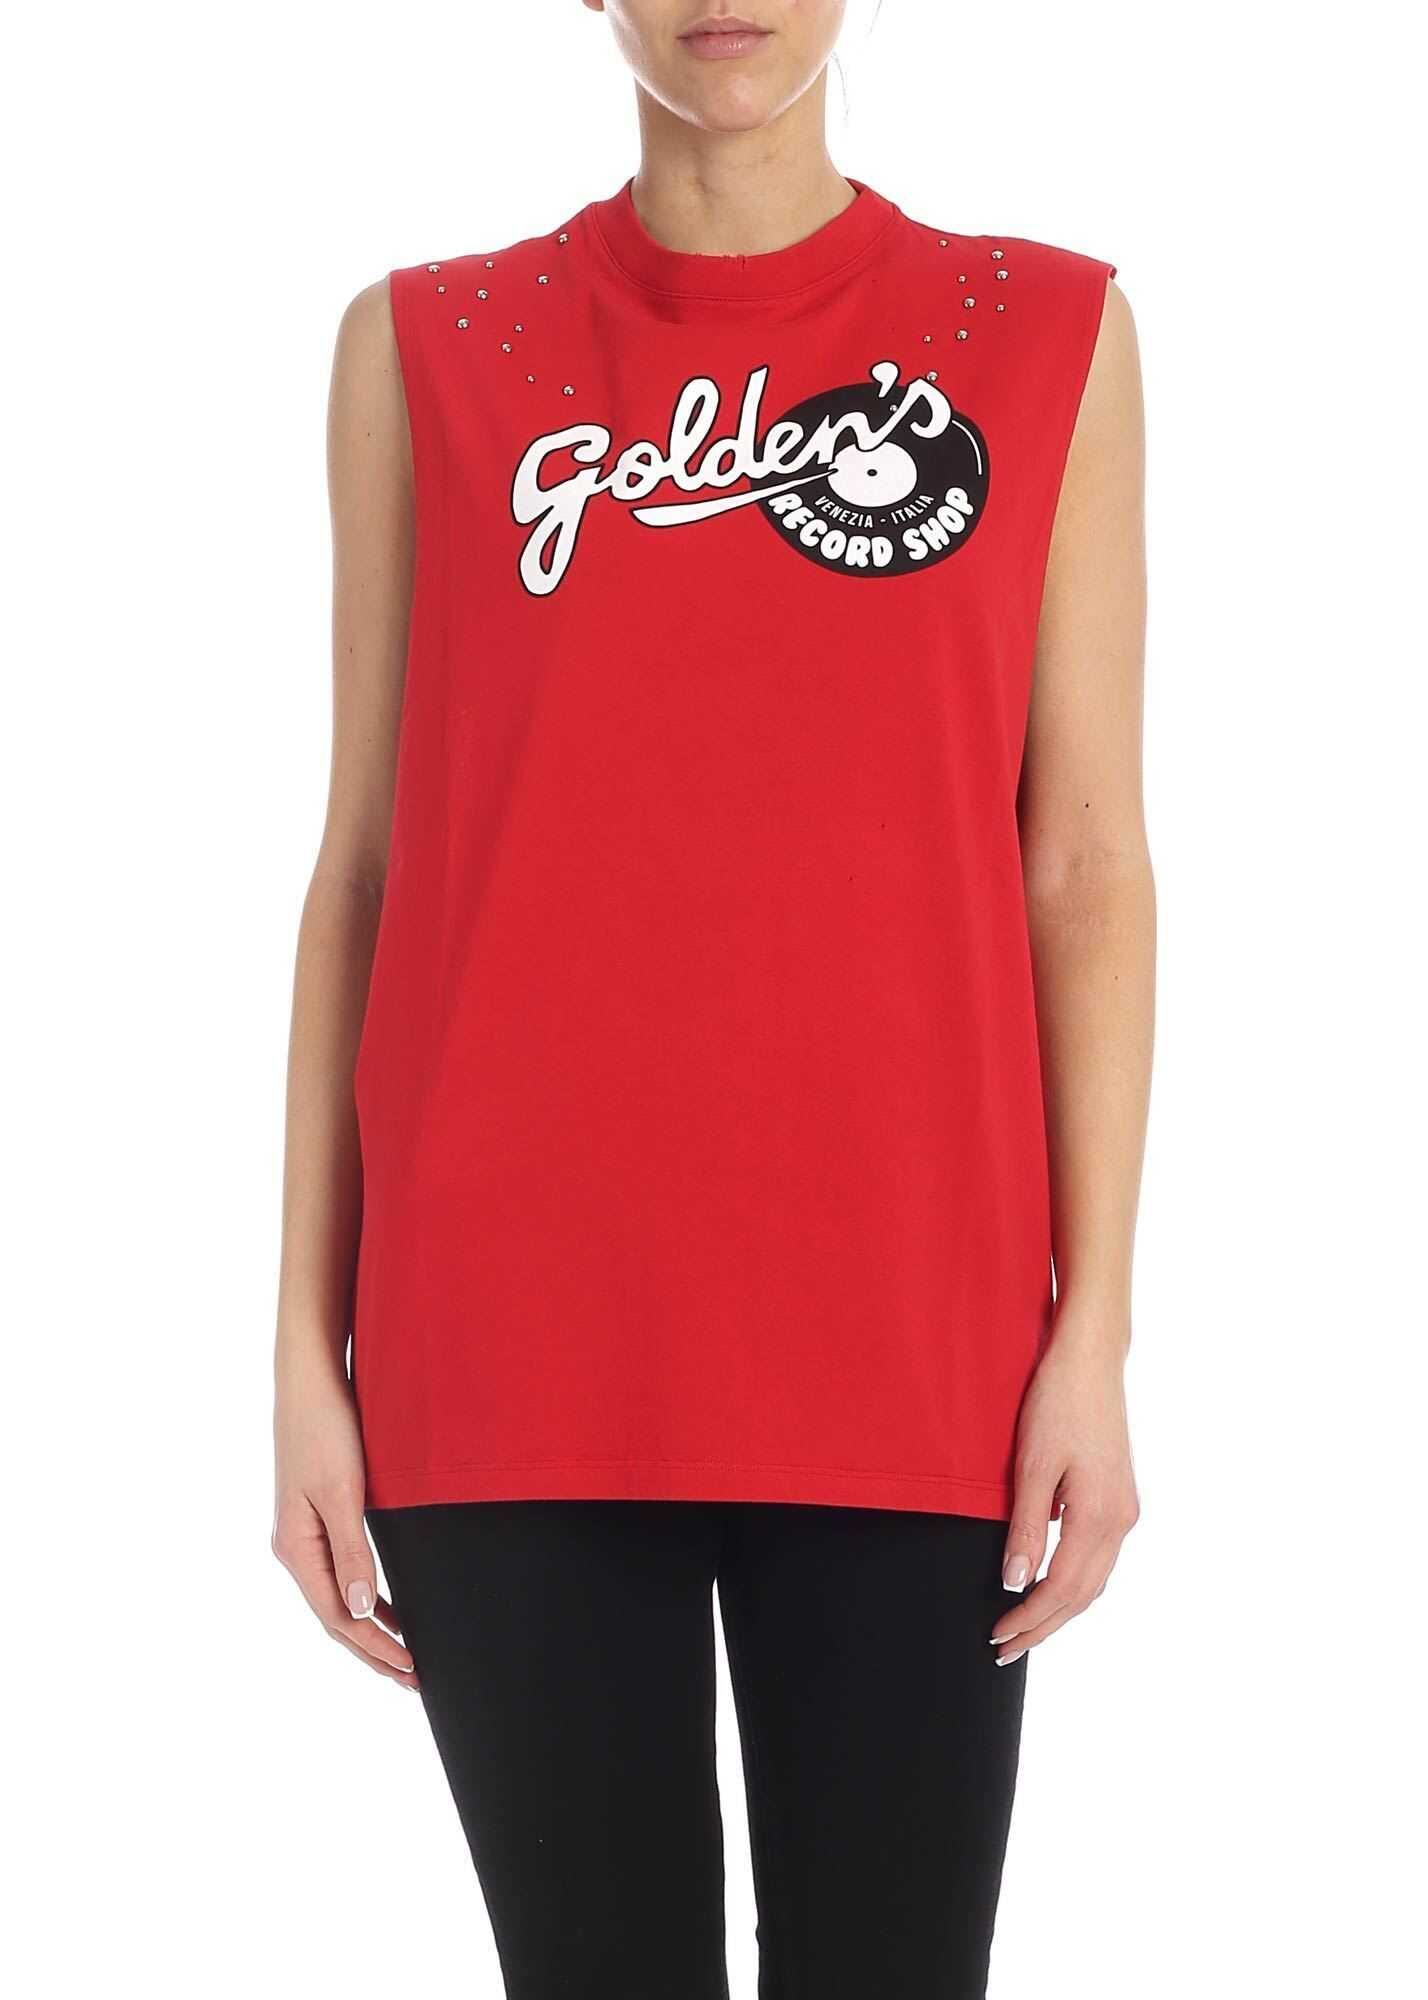 Golden Goose Marfa Golden's Print T-Shirt In Red Red